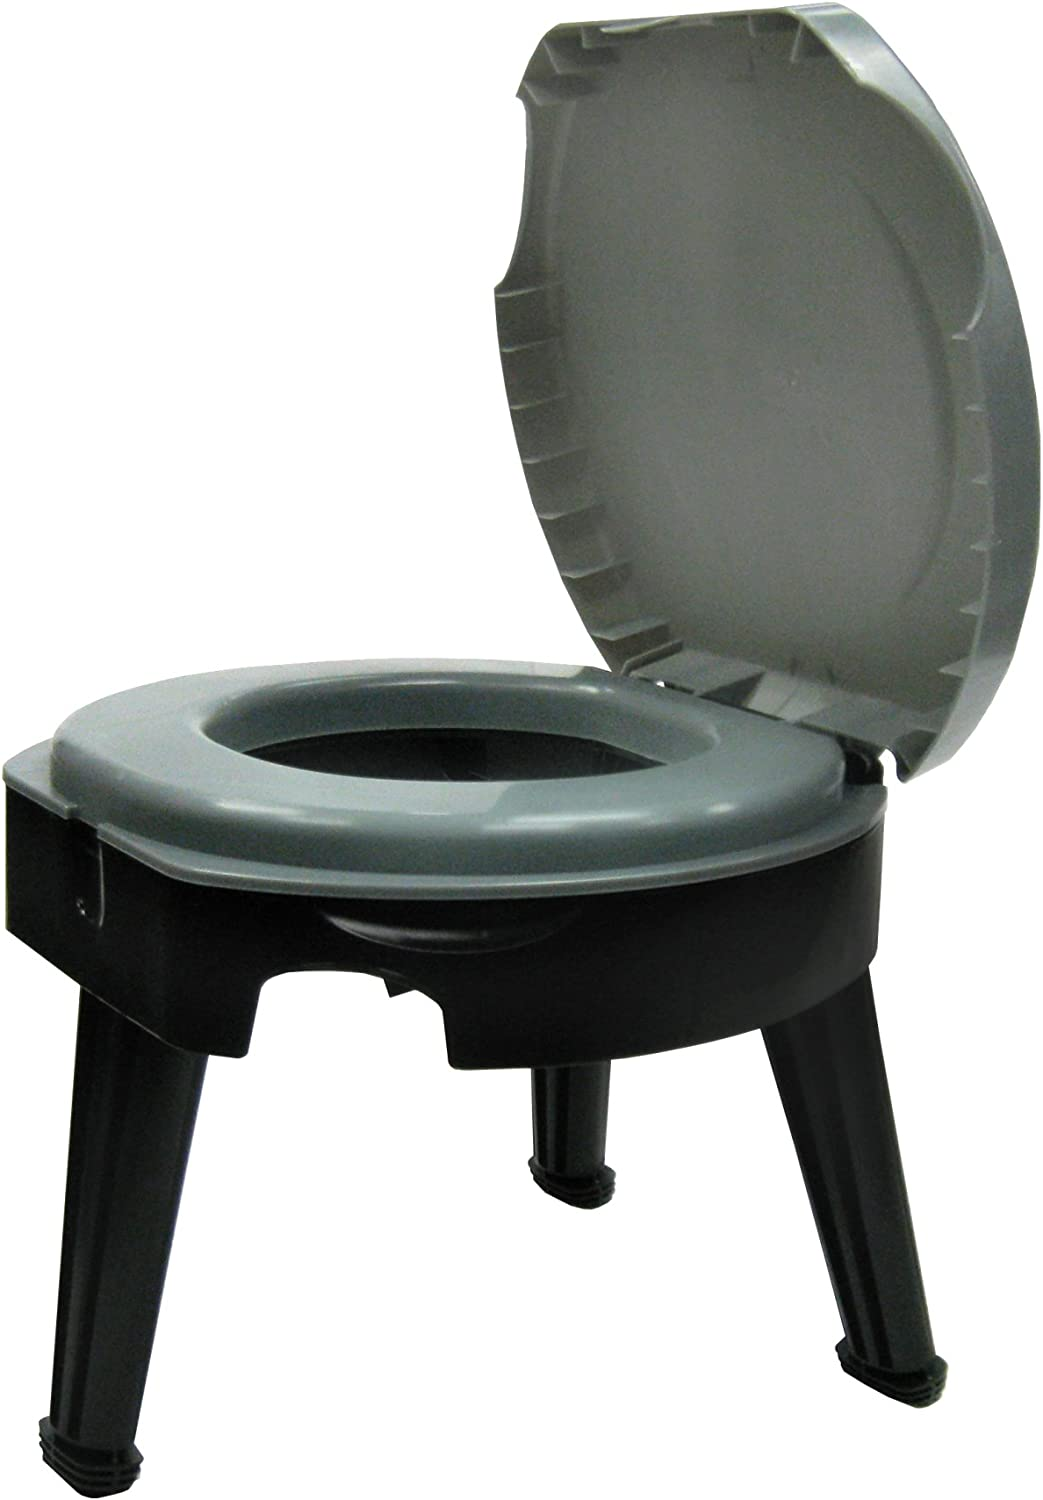 """Reliance Products Fold-to-Go Collapsible Portable Toilet, 9824-21W, Gray/Black, 14.5""""x14.5""""x14.5"""" : Camping Sanitation Supplies : Sports & Outdoors"""